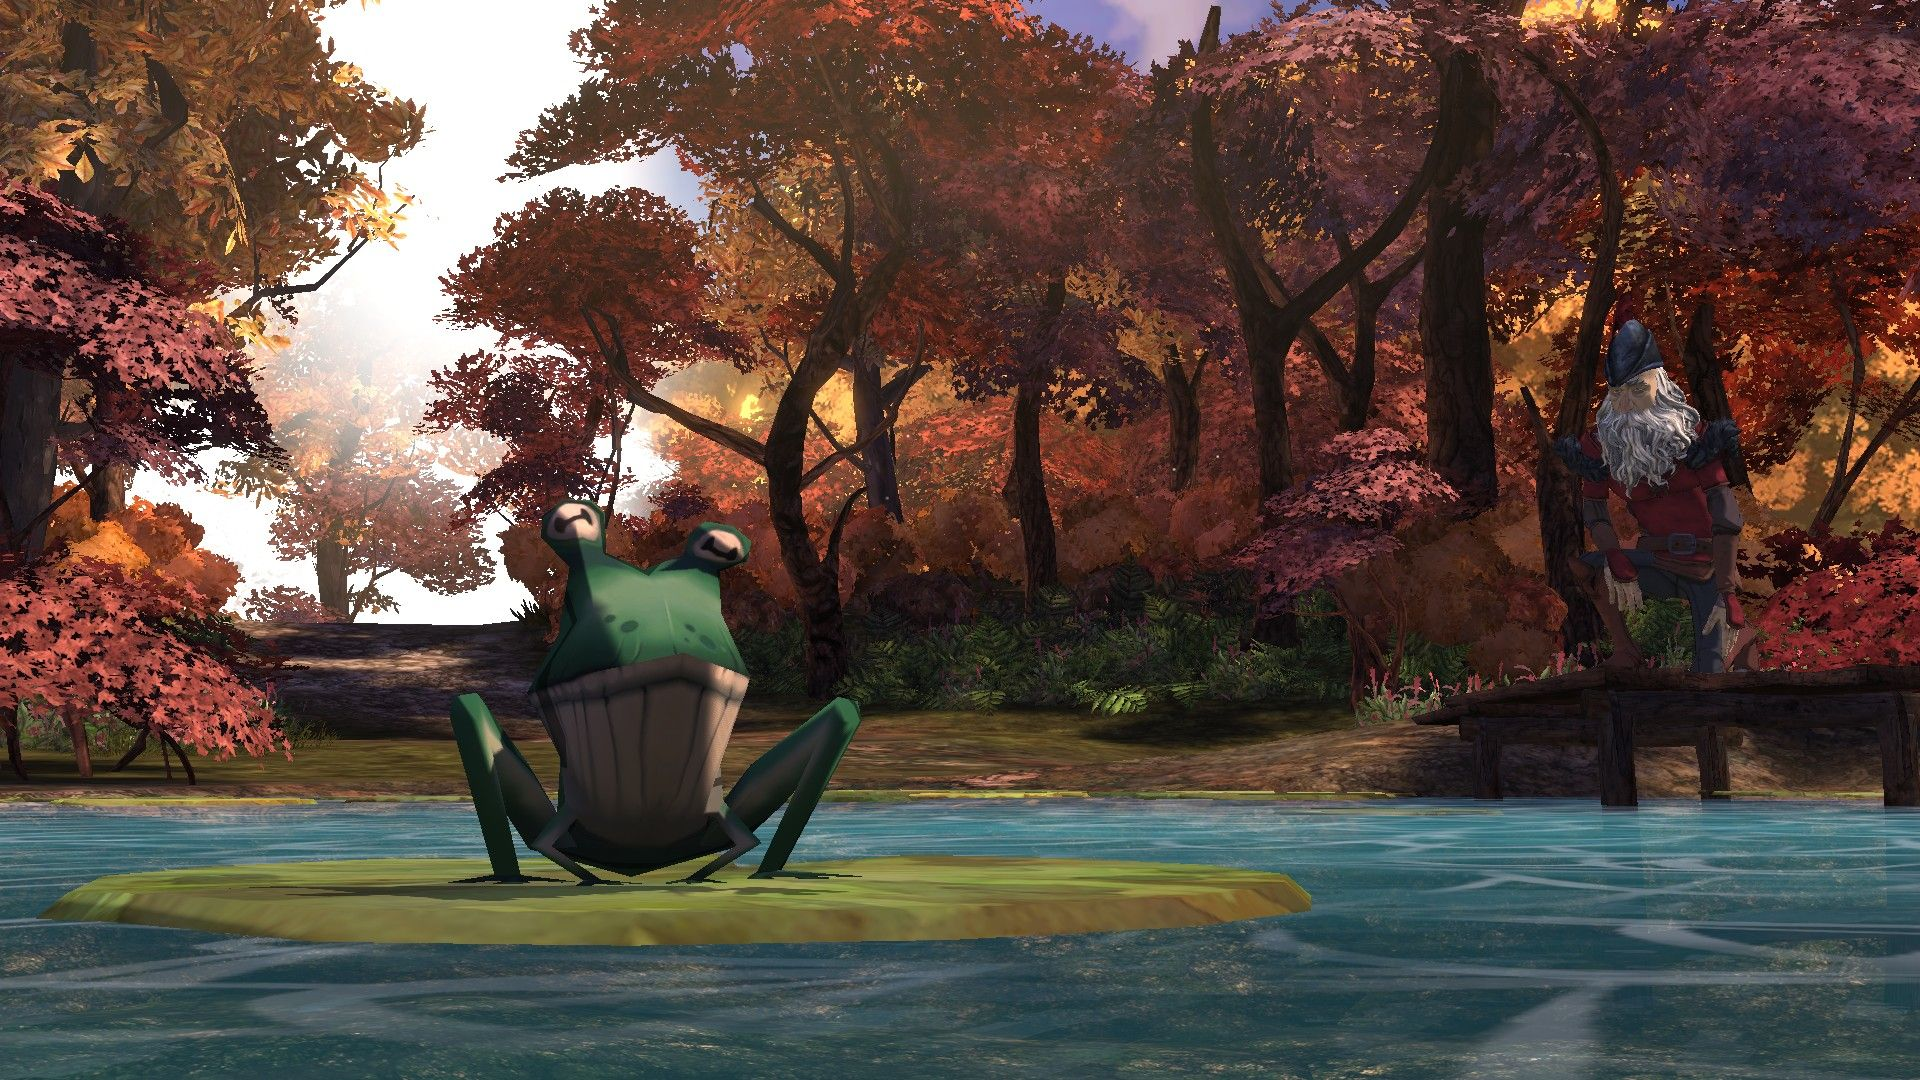 kings-quest-chapter-5-the-good-knight-screenshot-04